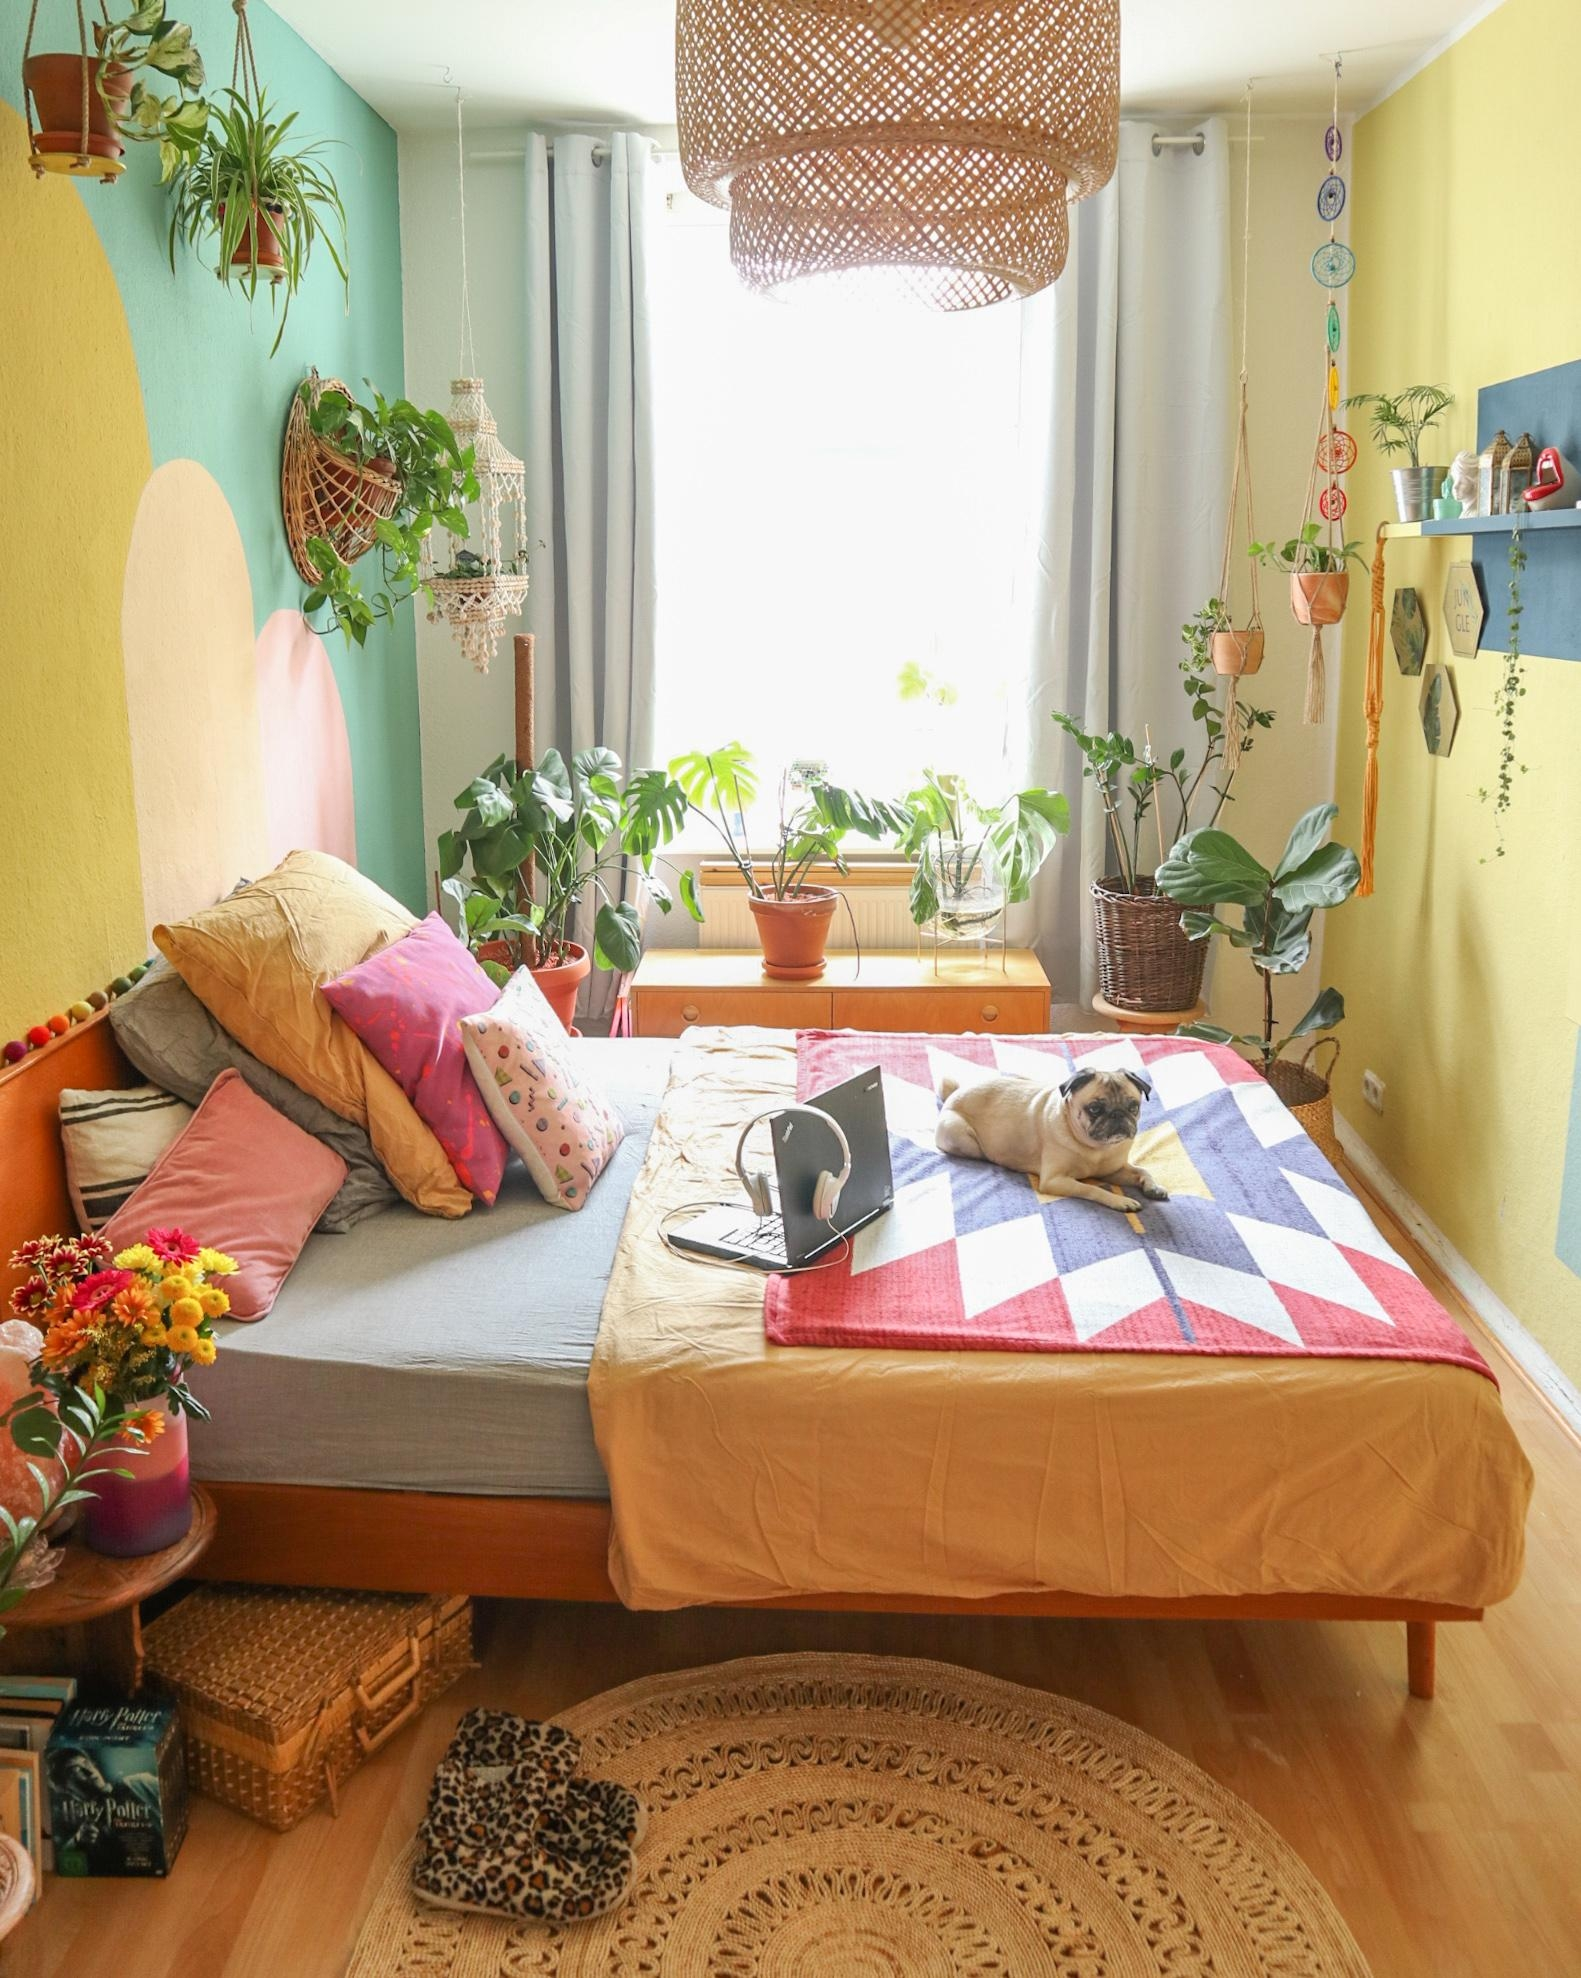 #bedroom #plantlover #colorful